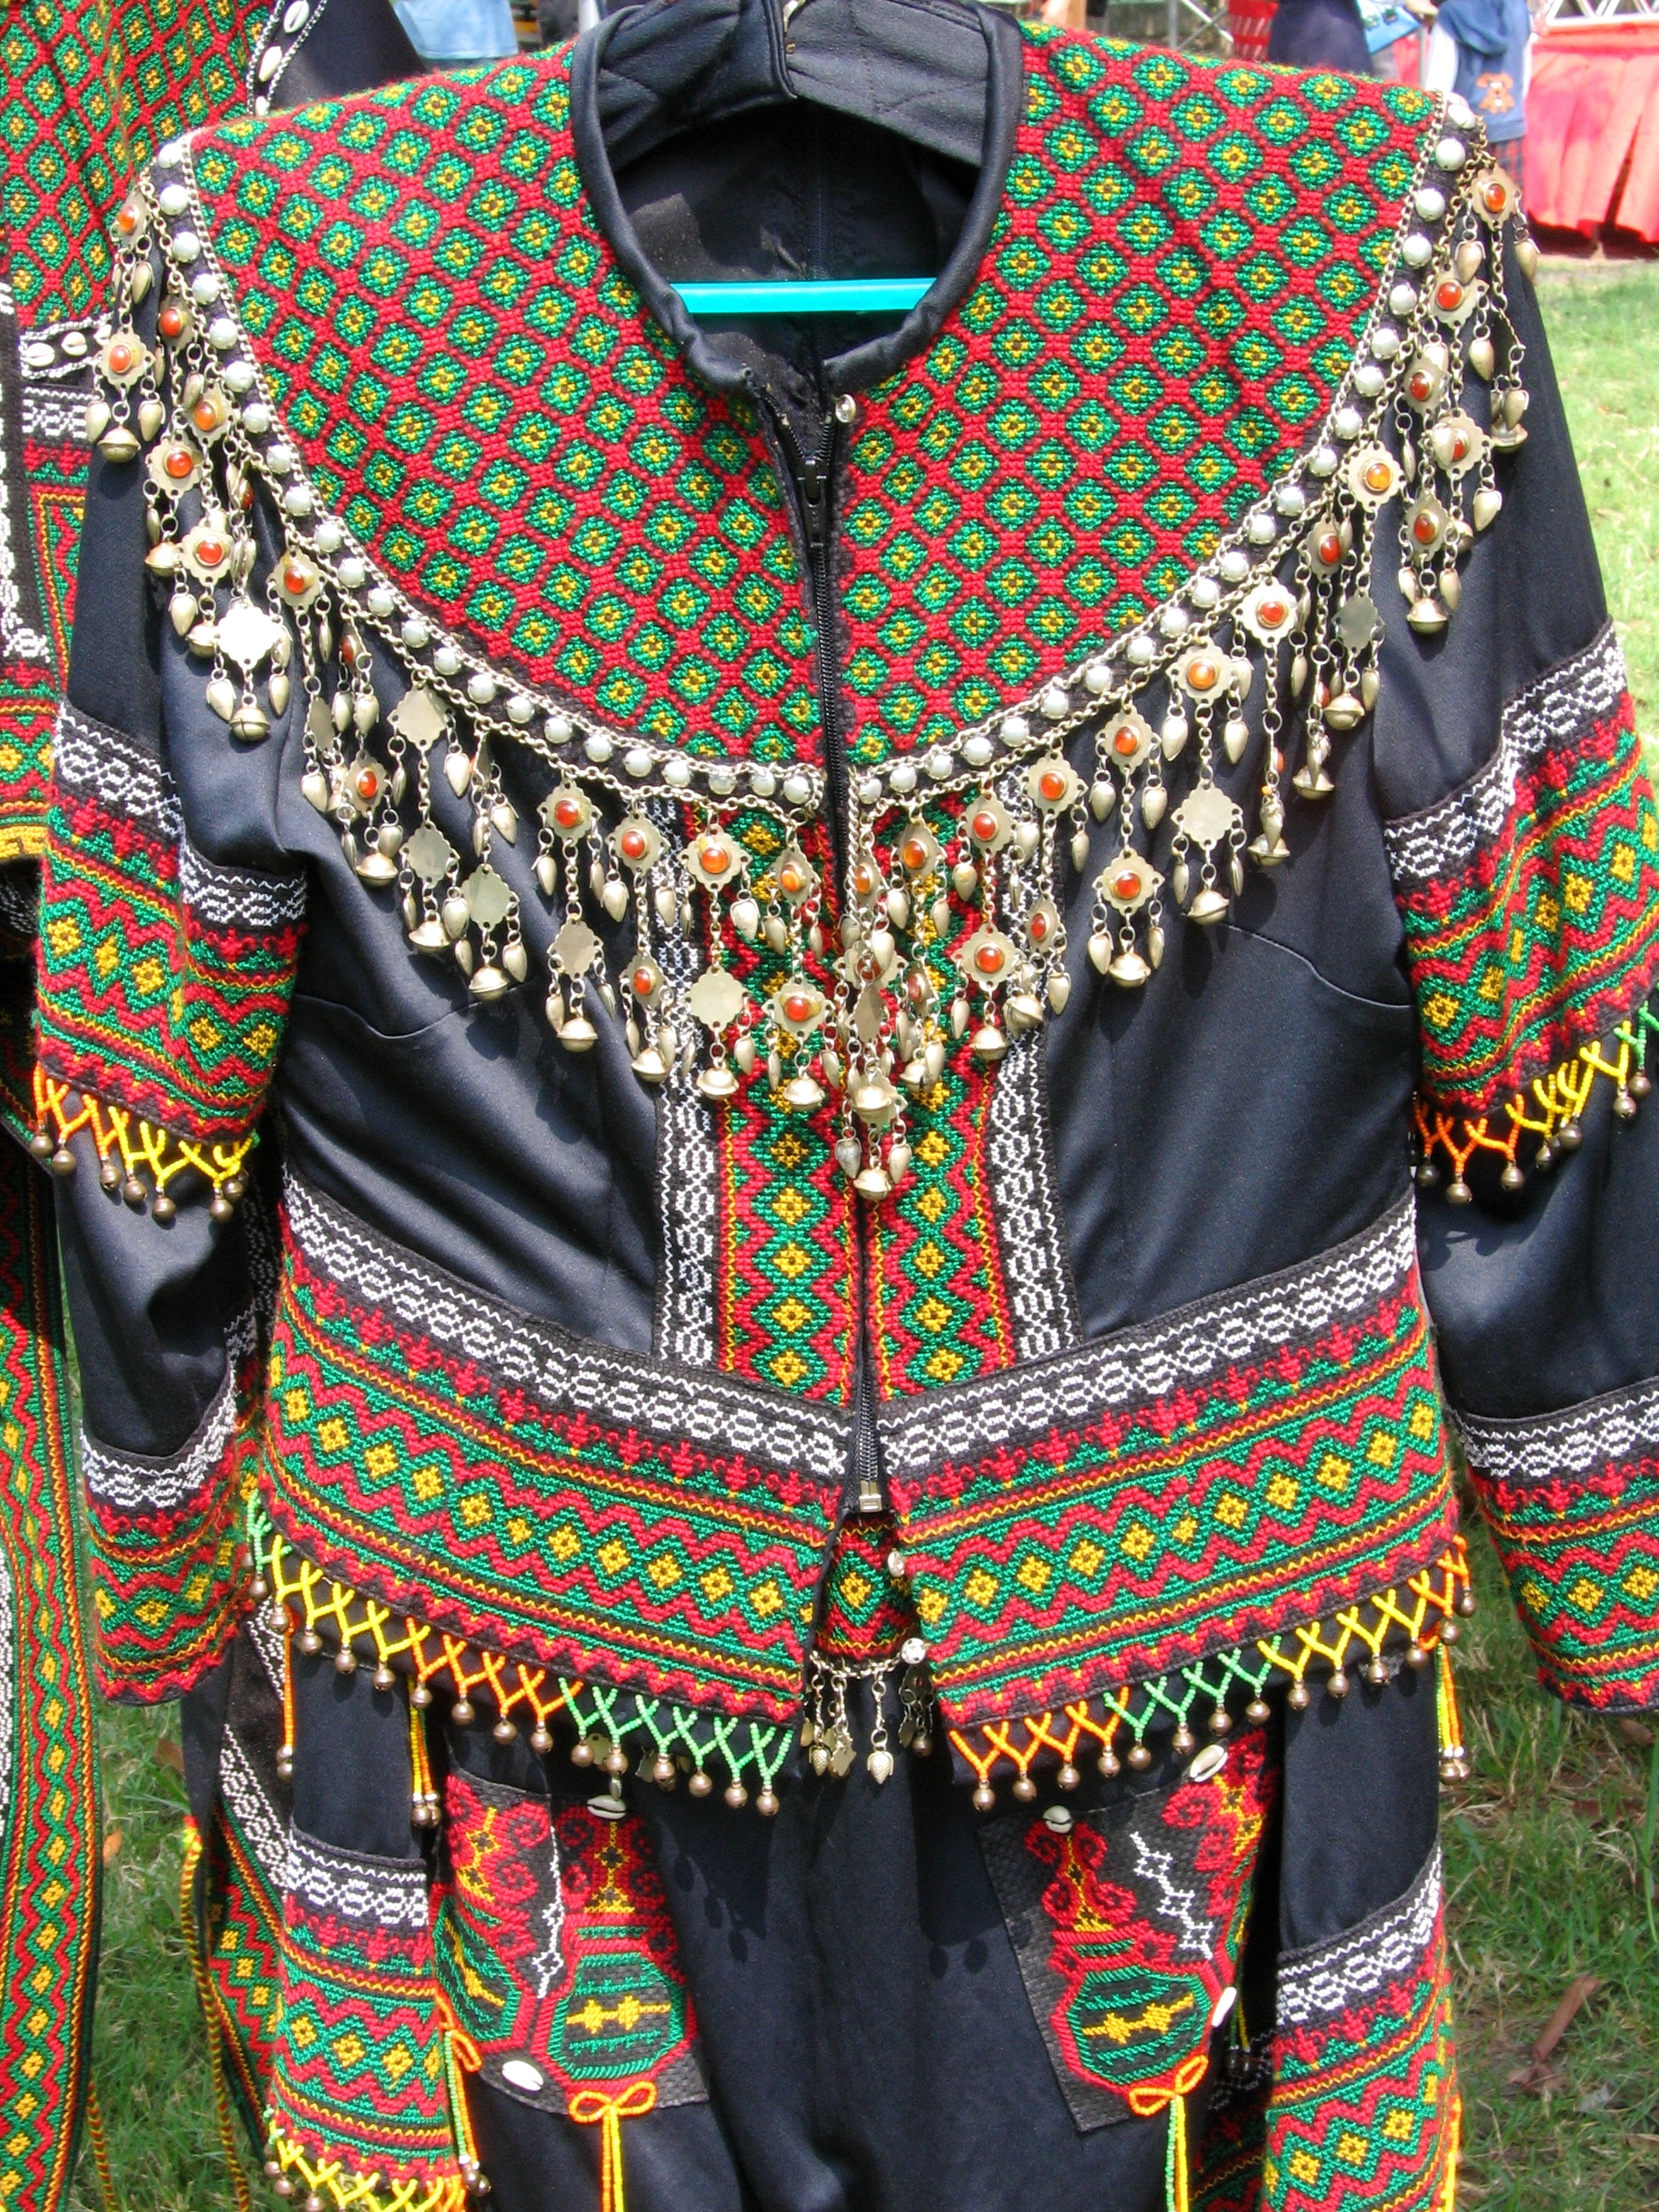 Native Traditional Costume, Aboriginal, Intricate, Tribal, Tradition, HQ Photo